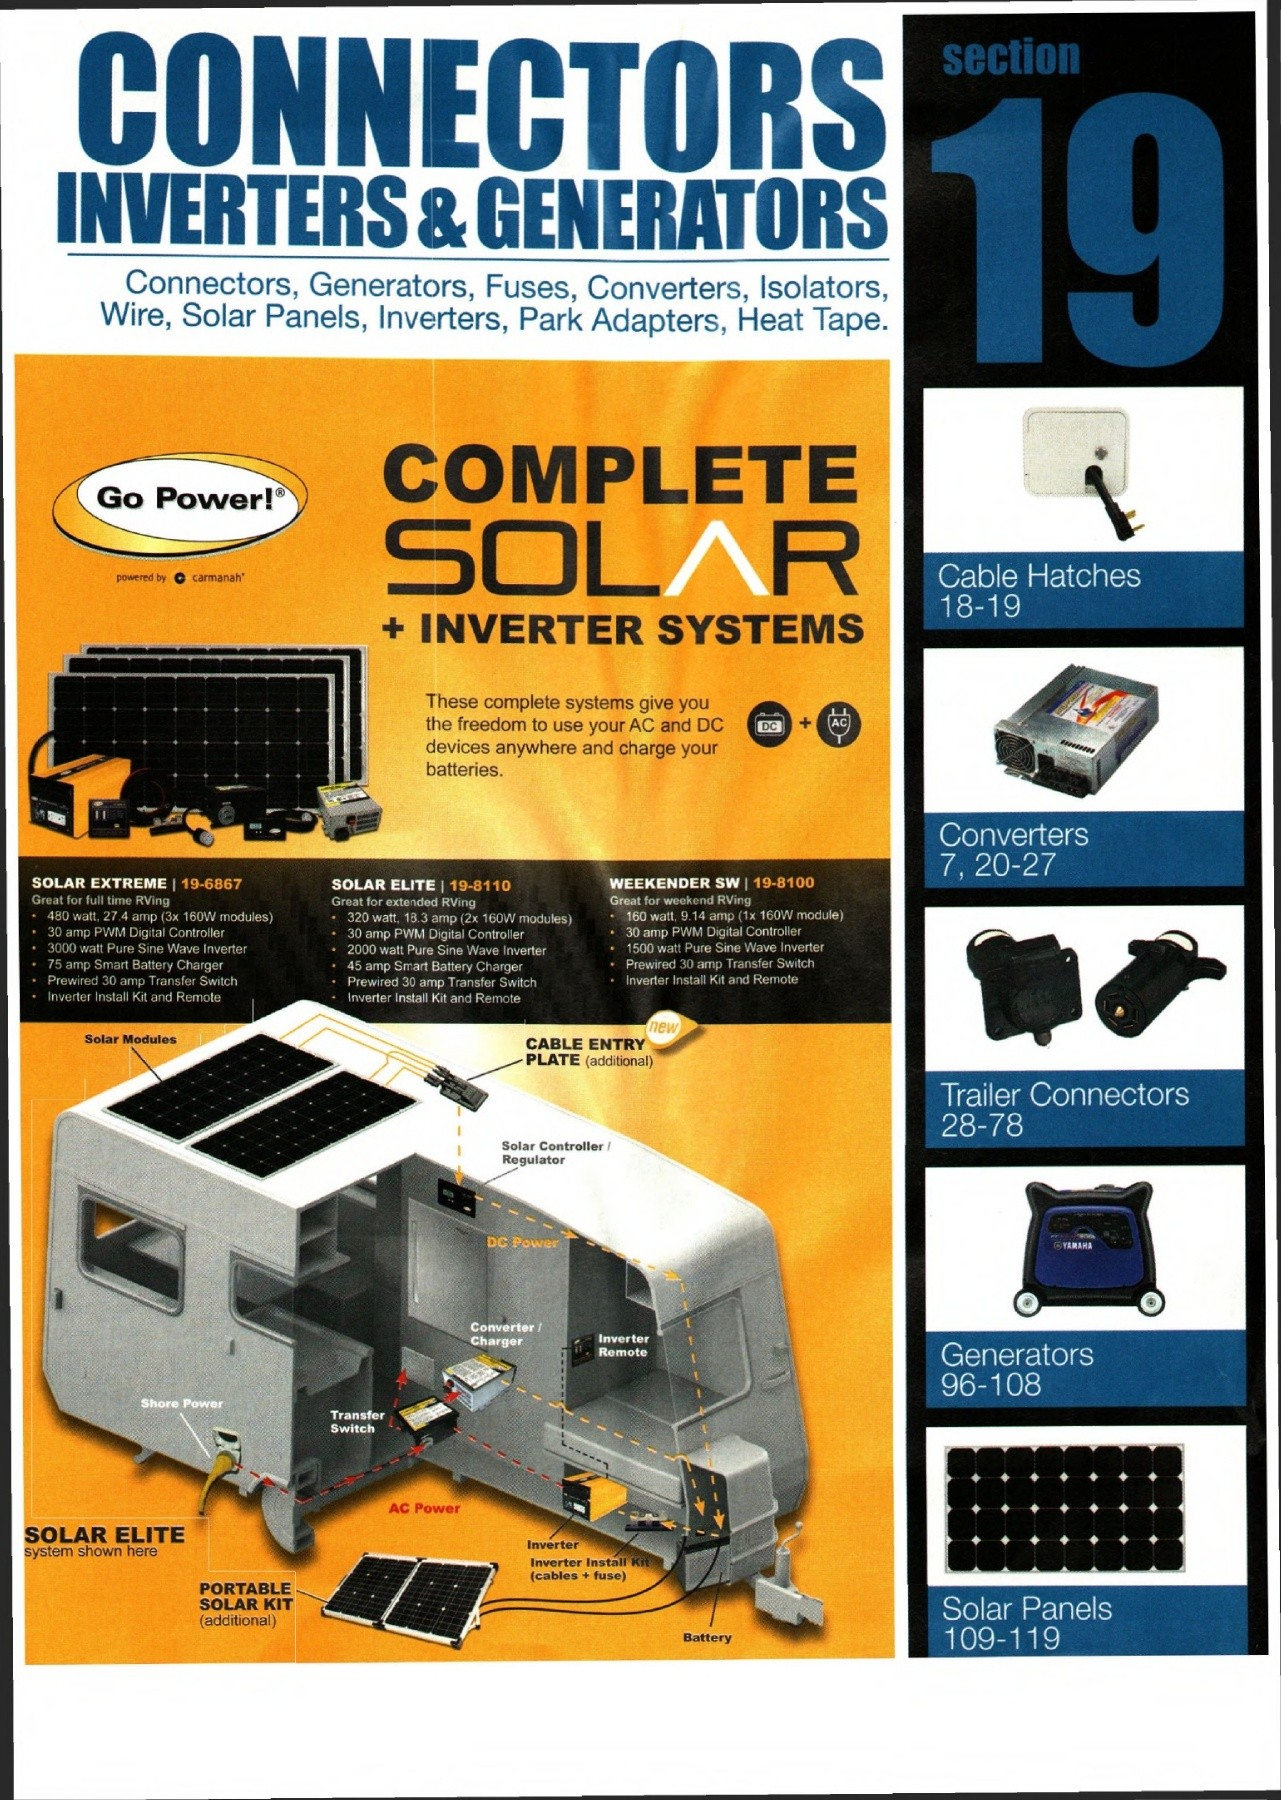 How is A Flasher Wired 19 Connectors Inverters & Generators Pages 1 50 Text Of How is A Flasher Wired